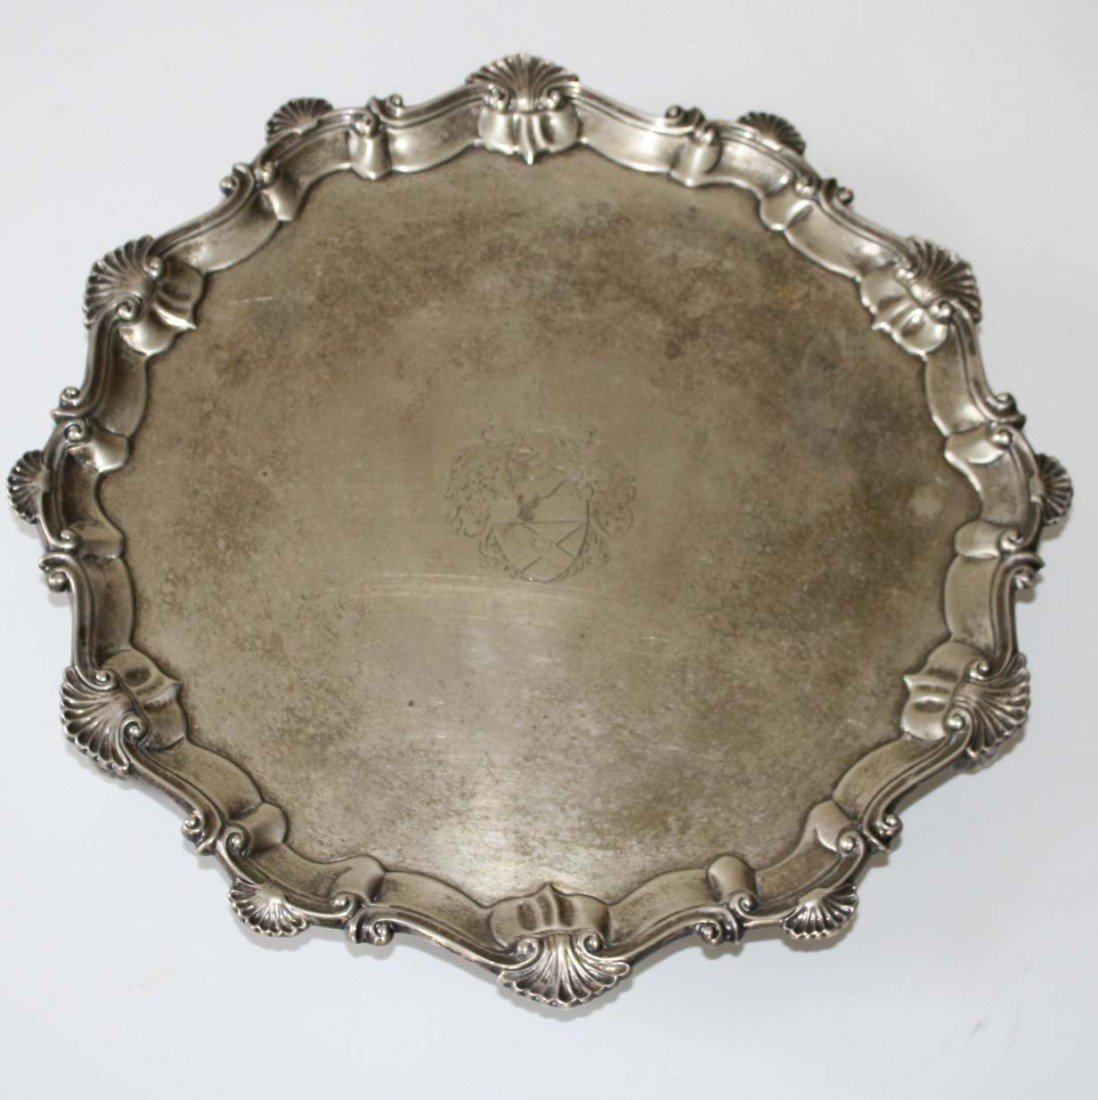 13 inch English silver footed salver marked EC (Ebeneze